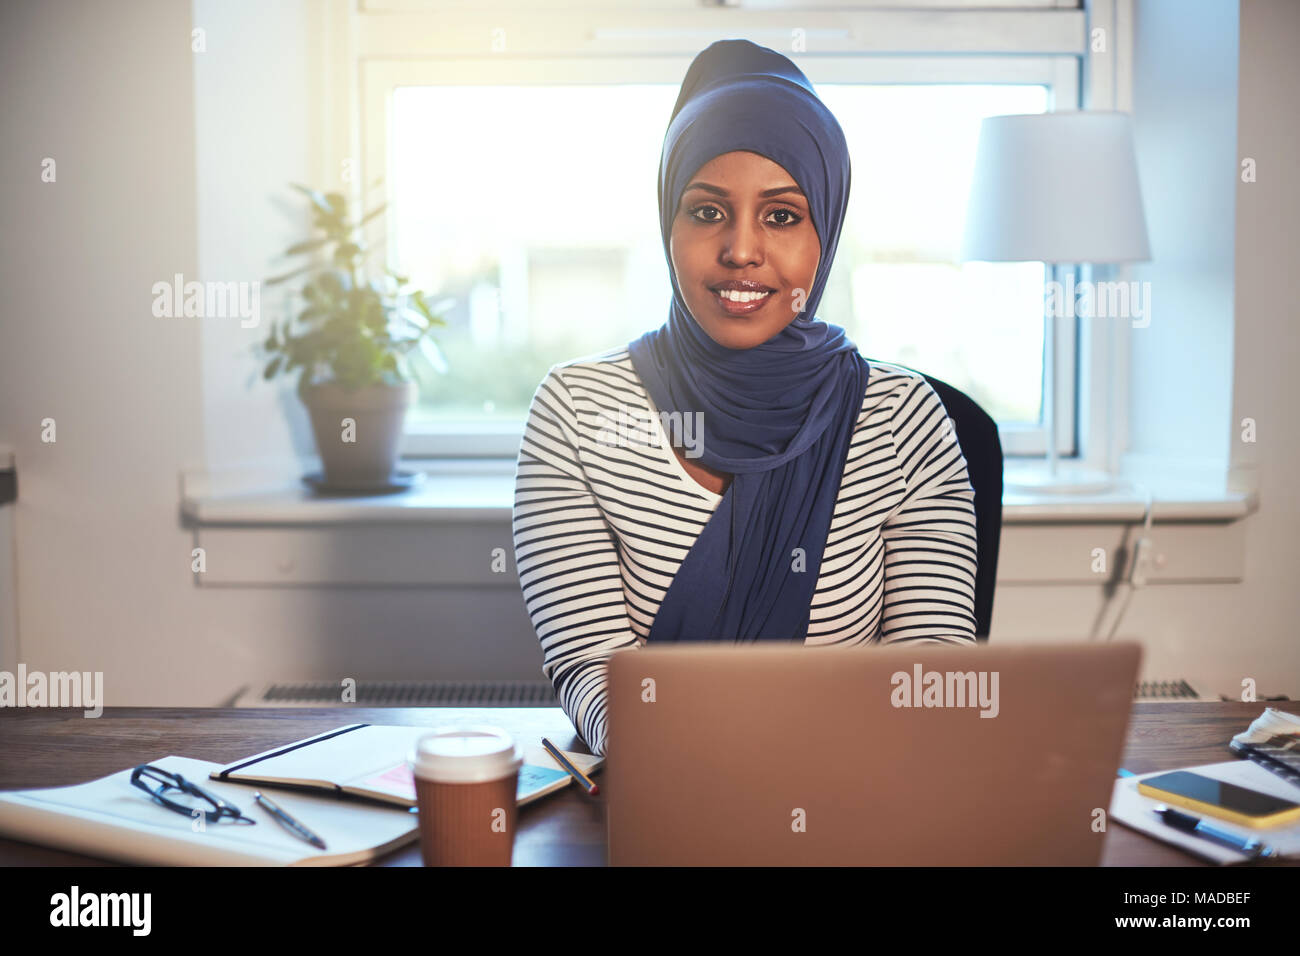 Smiling young Muslim female entrepreneur wearing a hijab sitting in her home office working online with a laptop Stock Photo